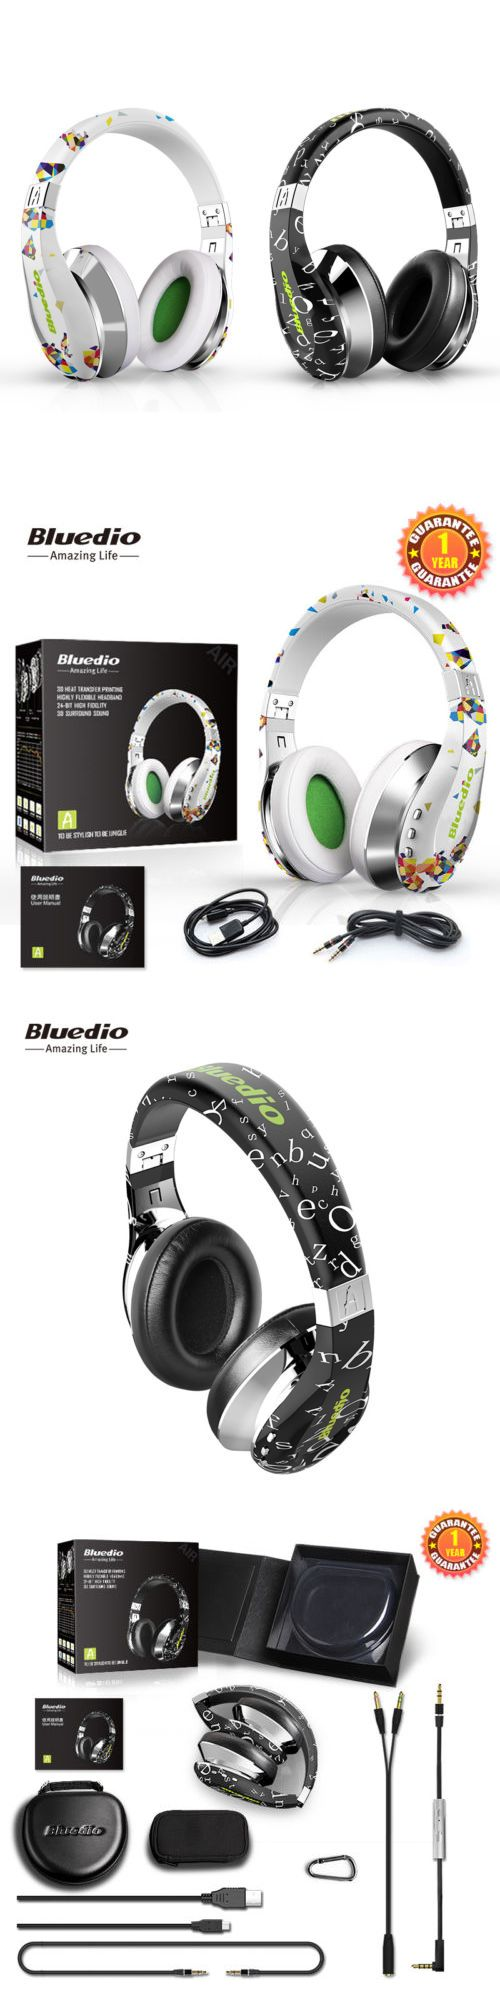 Headphones: Bluedio A(Air) Bluetooth4.1 Stereo Headsets Wireless Headphone With Built-In Mic BUY IT NOW ONLY: $49.49